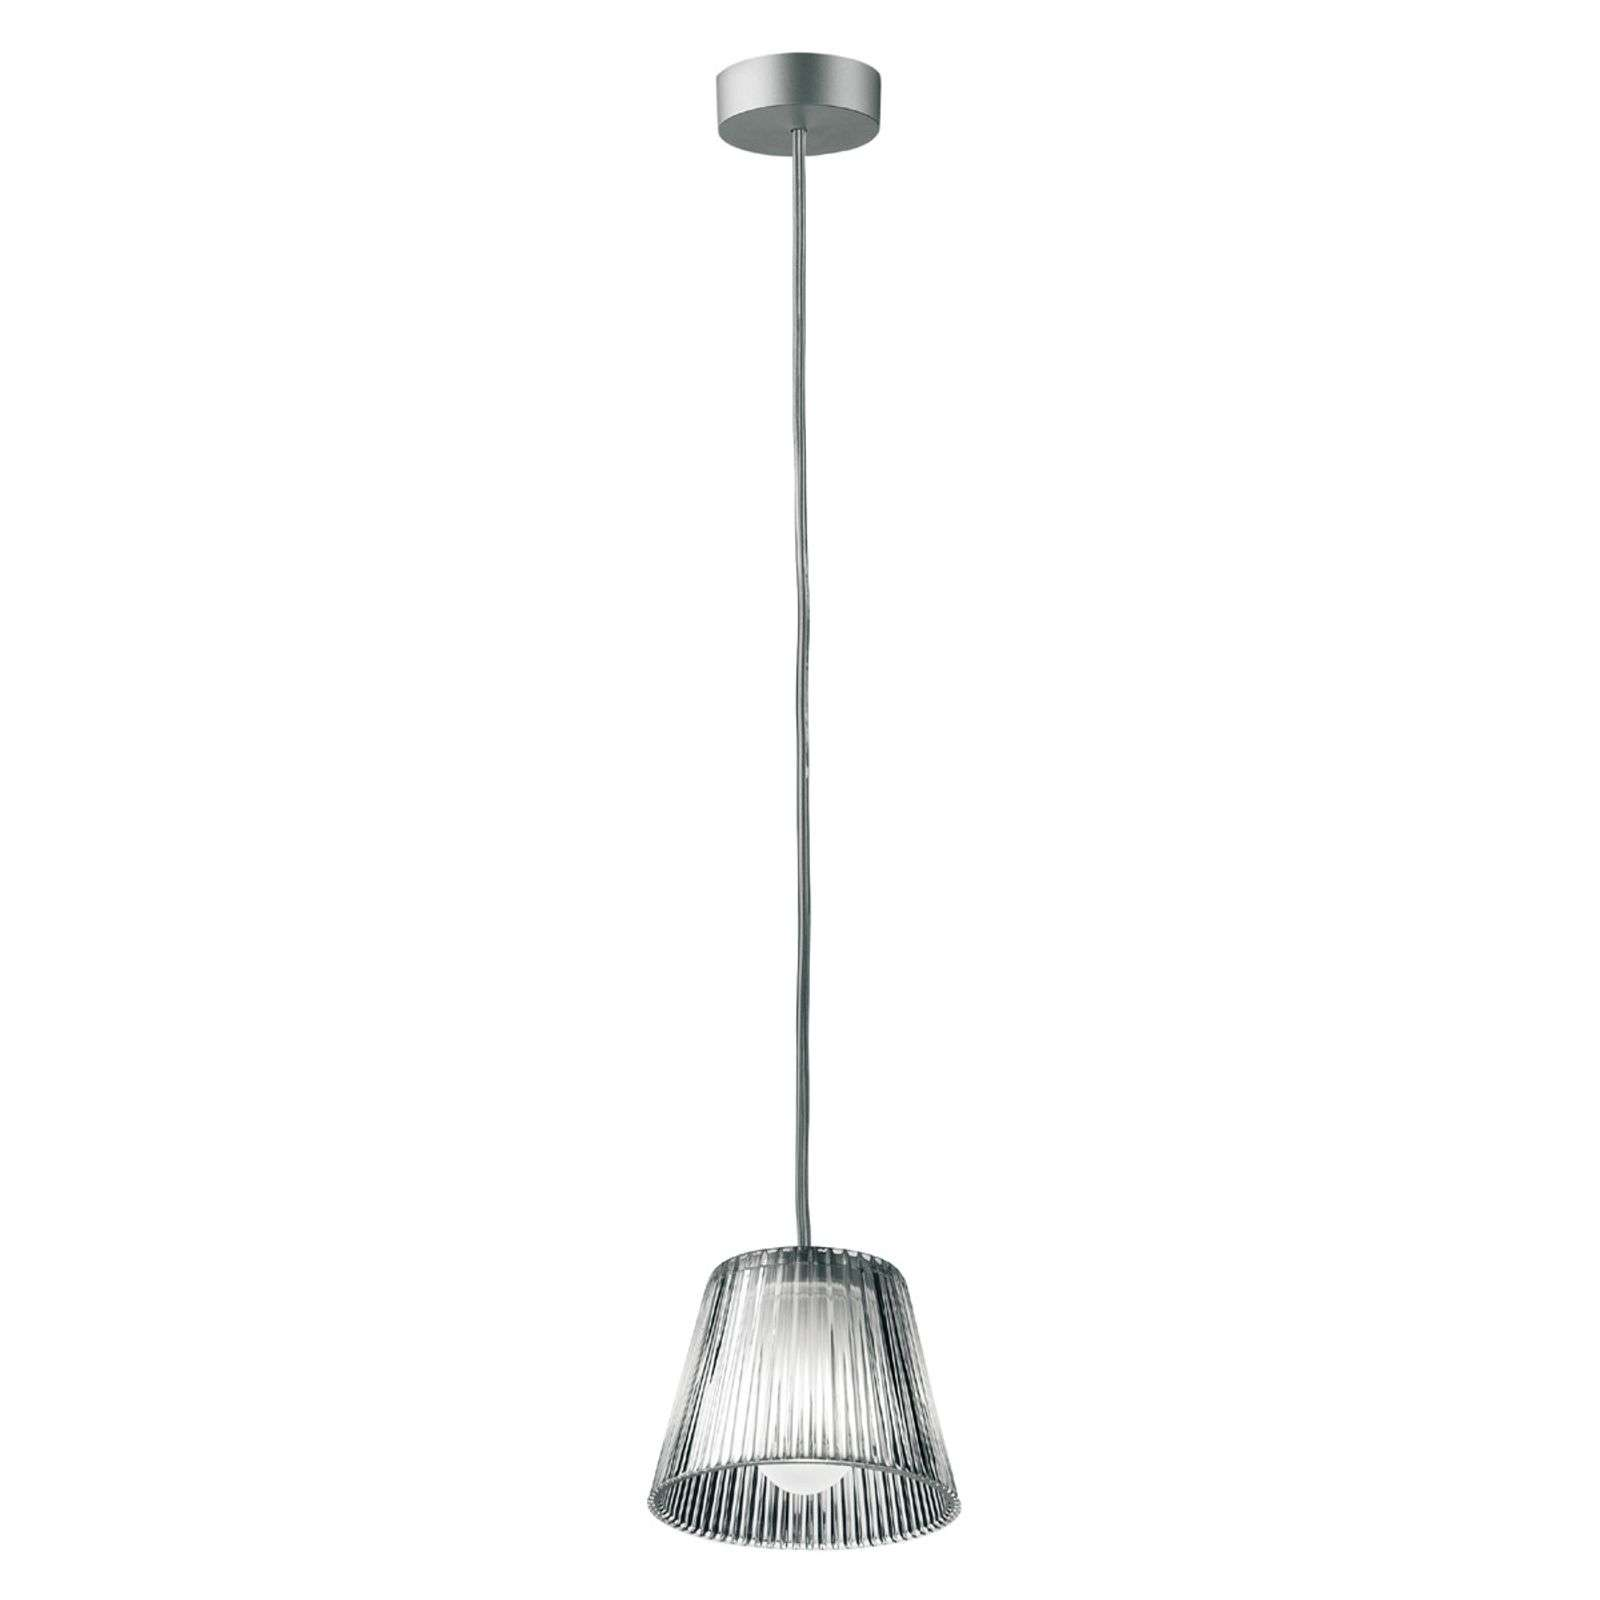 Petite suspension ROMEO BABE S by FLOS